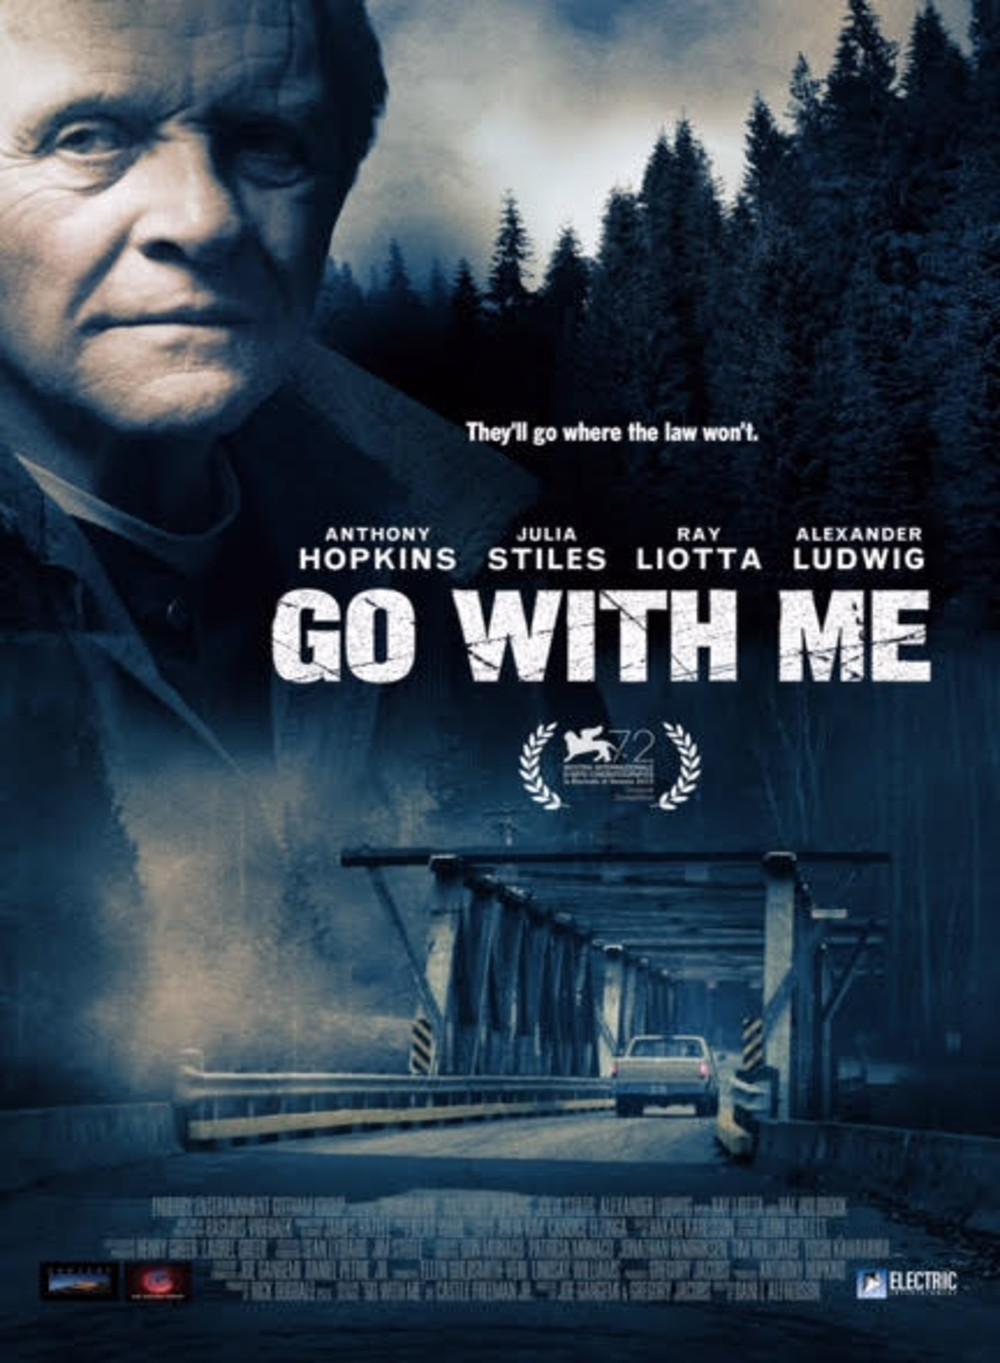 Go With Me Movie Trailer : Teaser Trailer